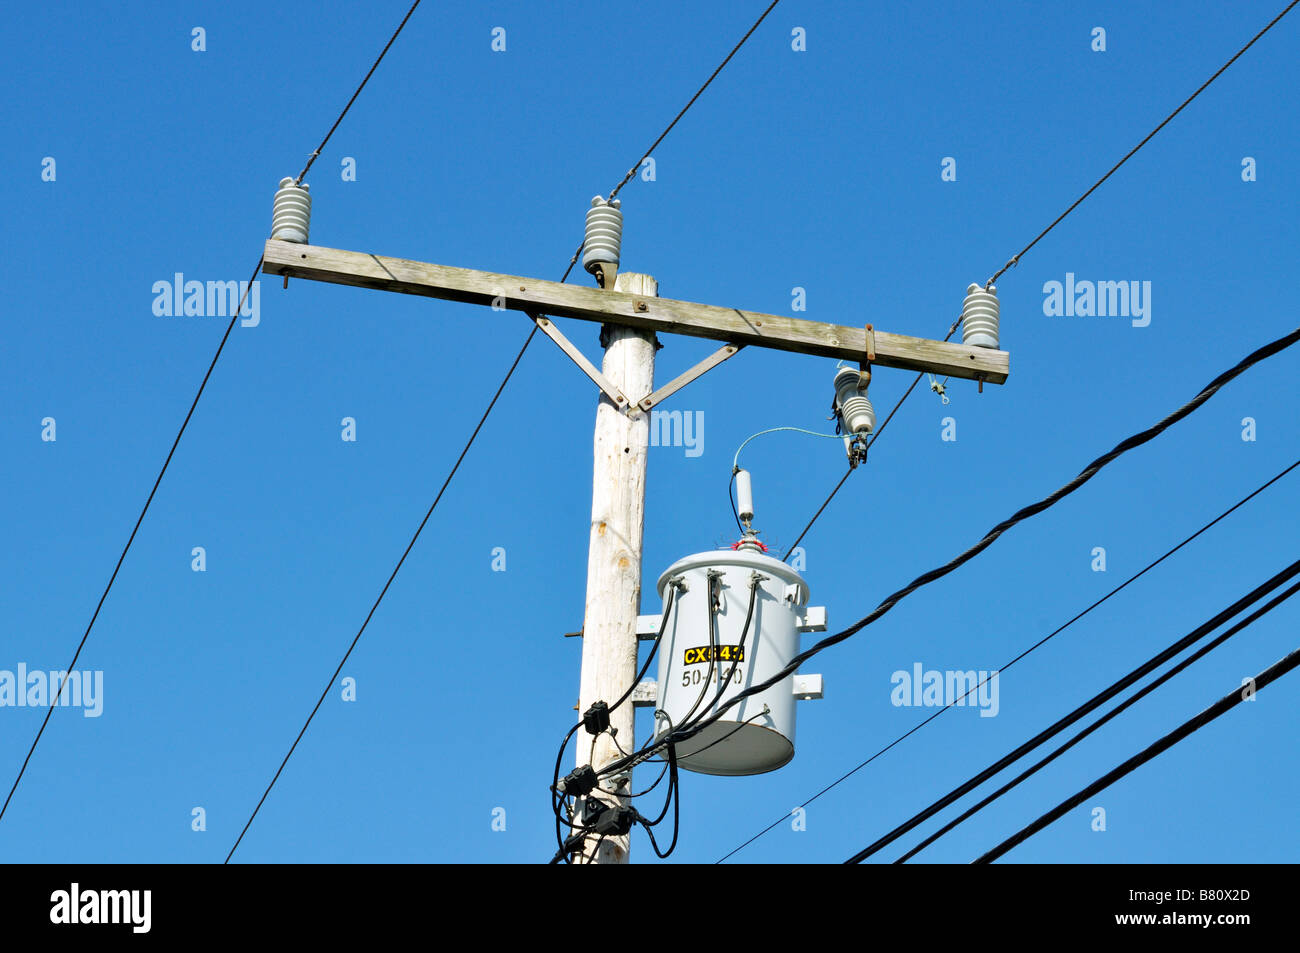 Electric Telephone Stock Photos Images Wiring Sky Box Single Electrical Transformer On Wood Pole Showing Cables And Insulators Against Clear Blue